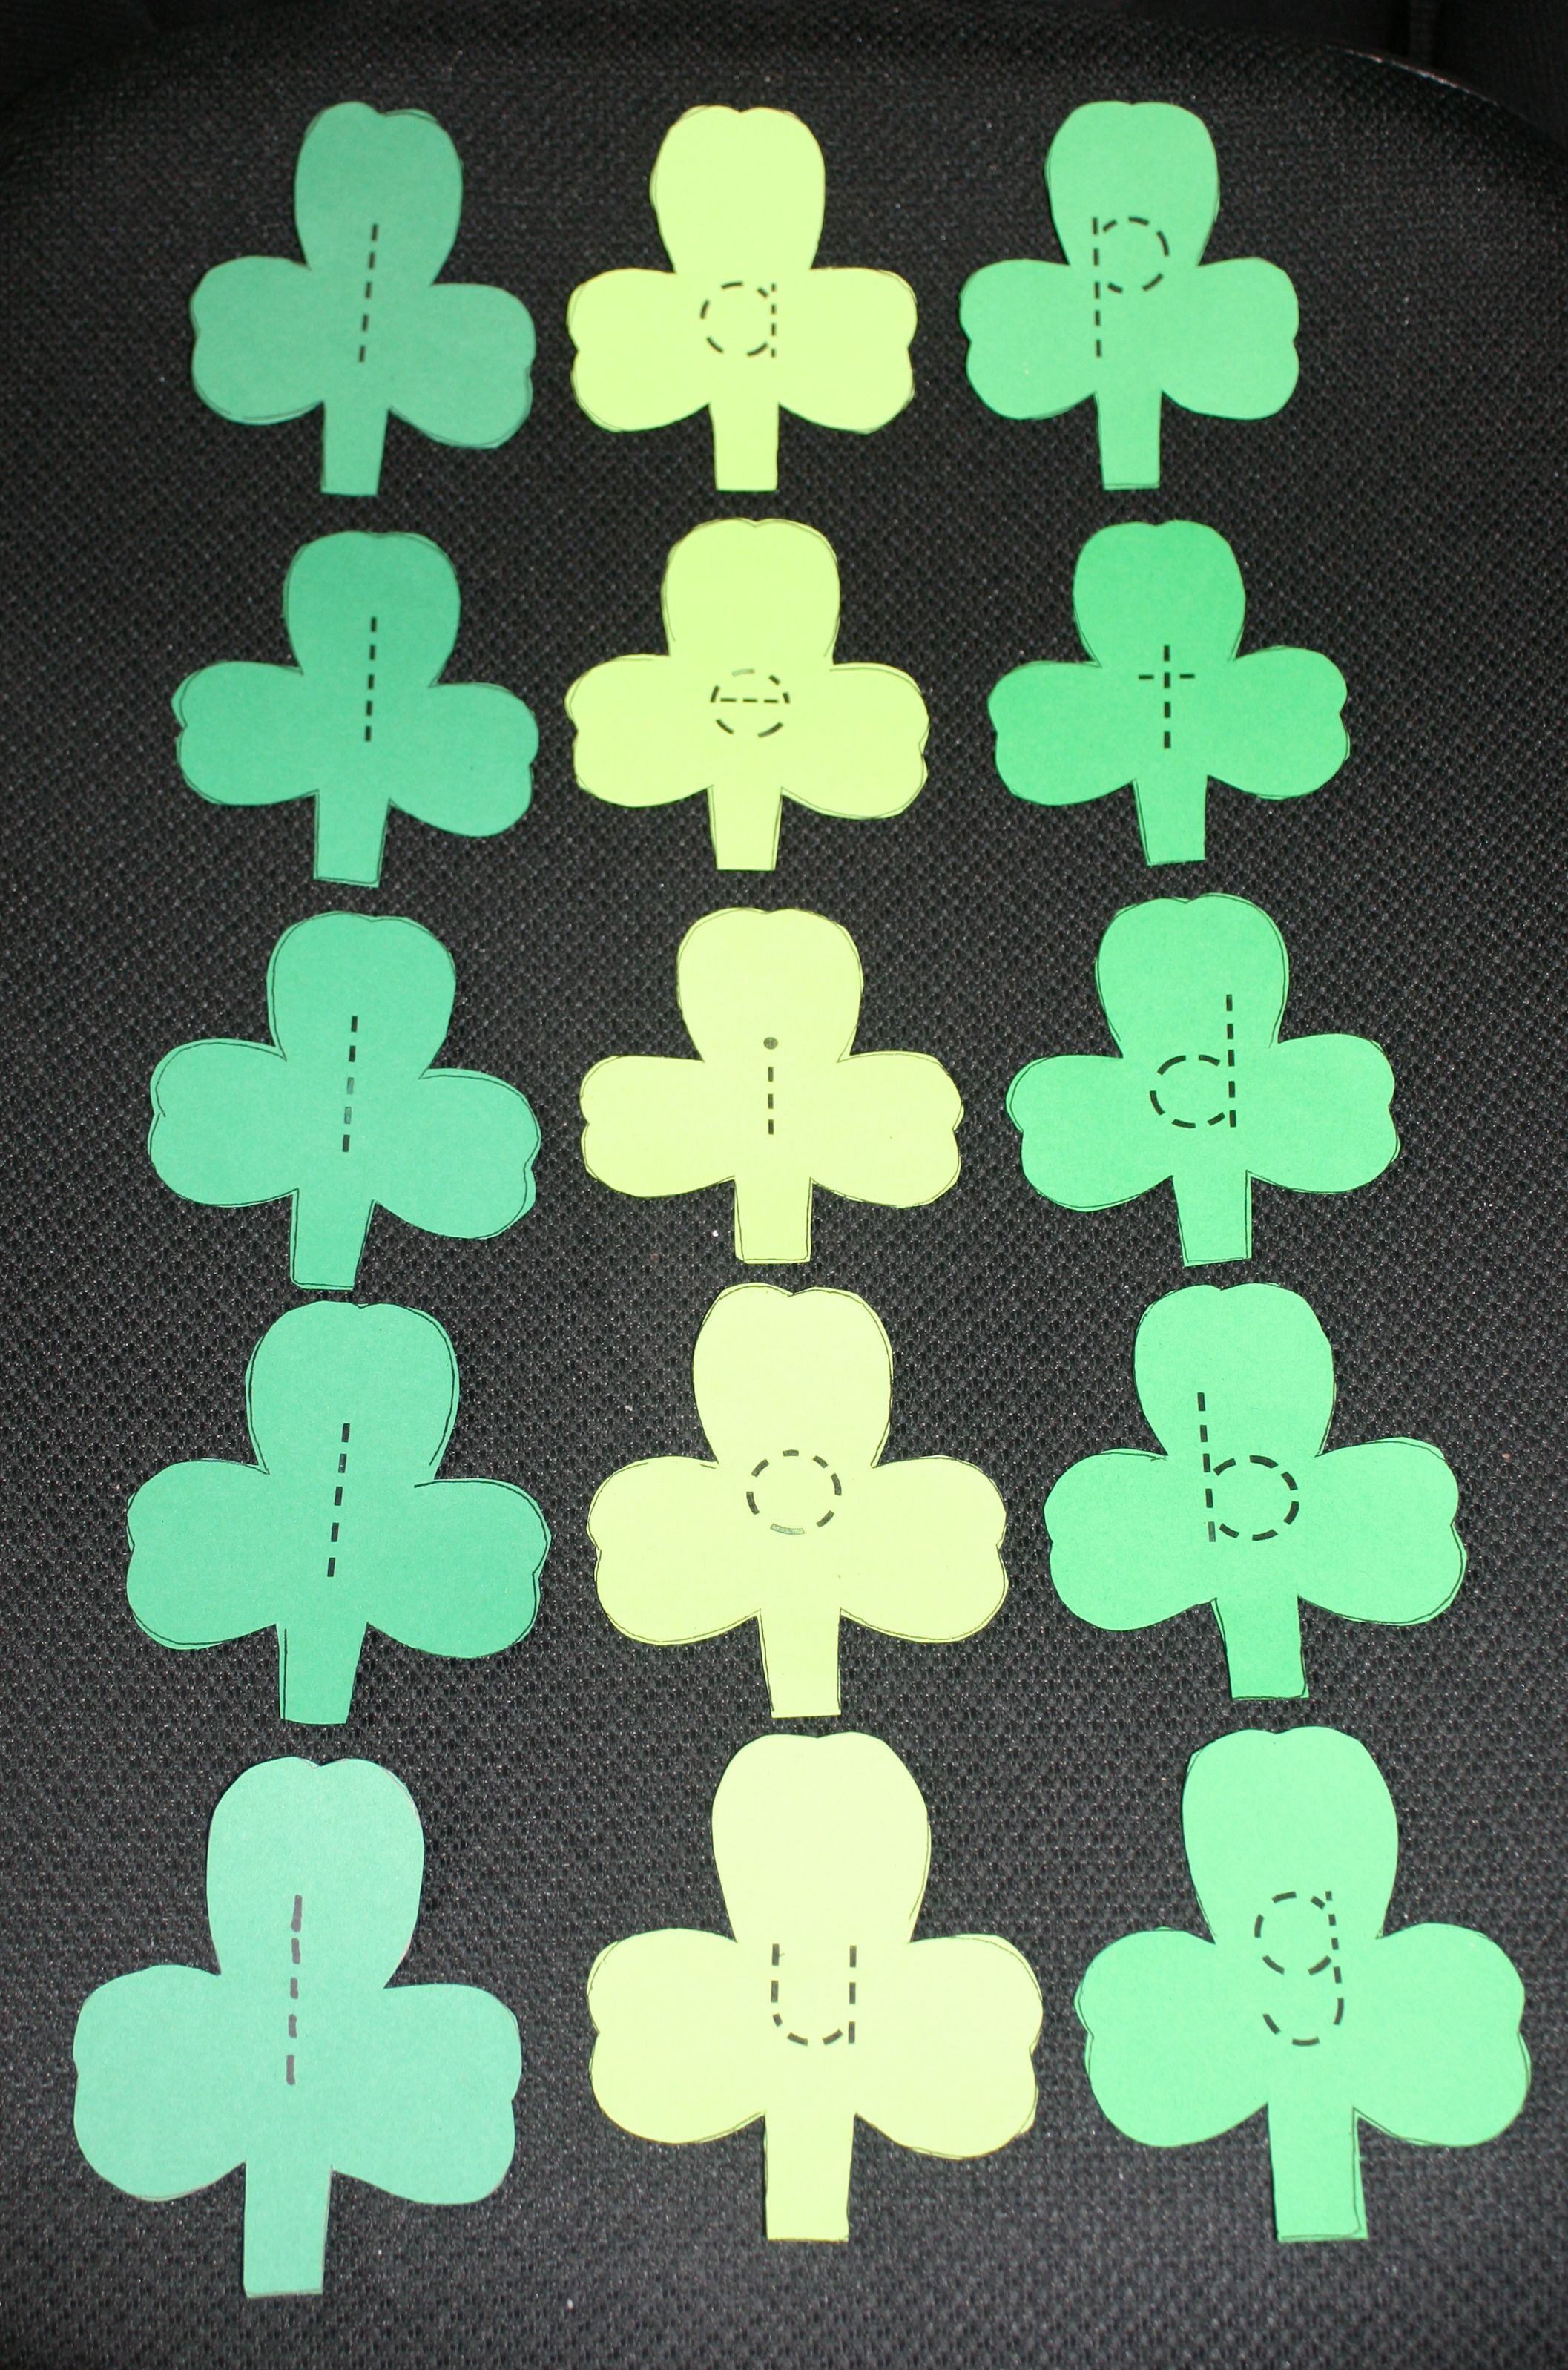 Cvc Shamrock Word Game